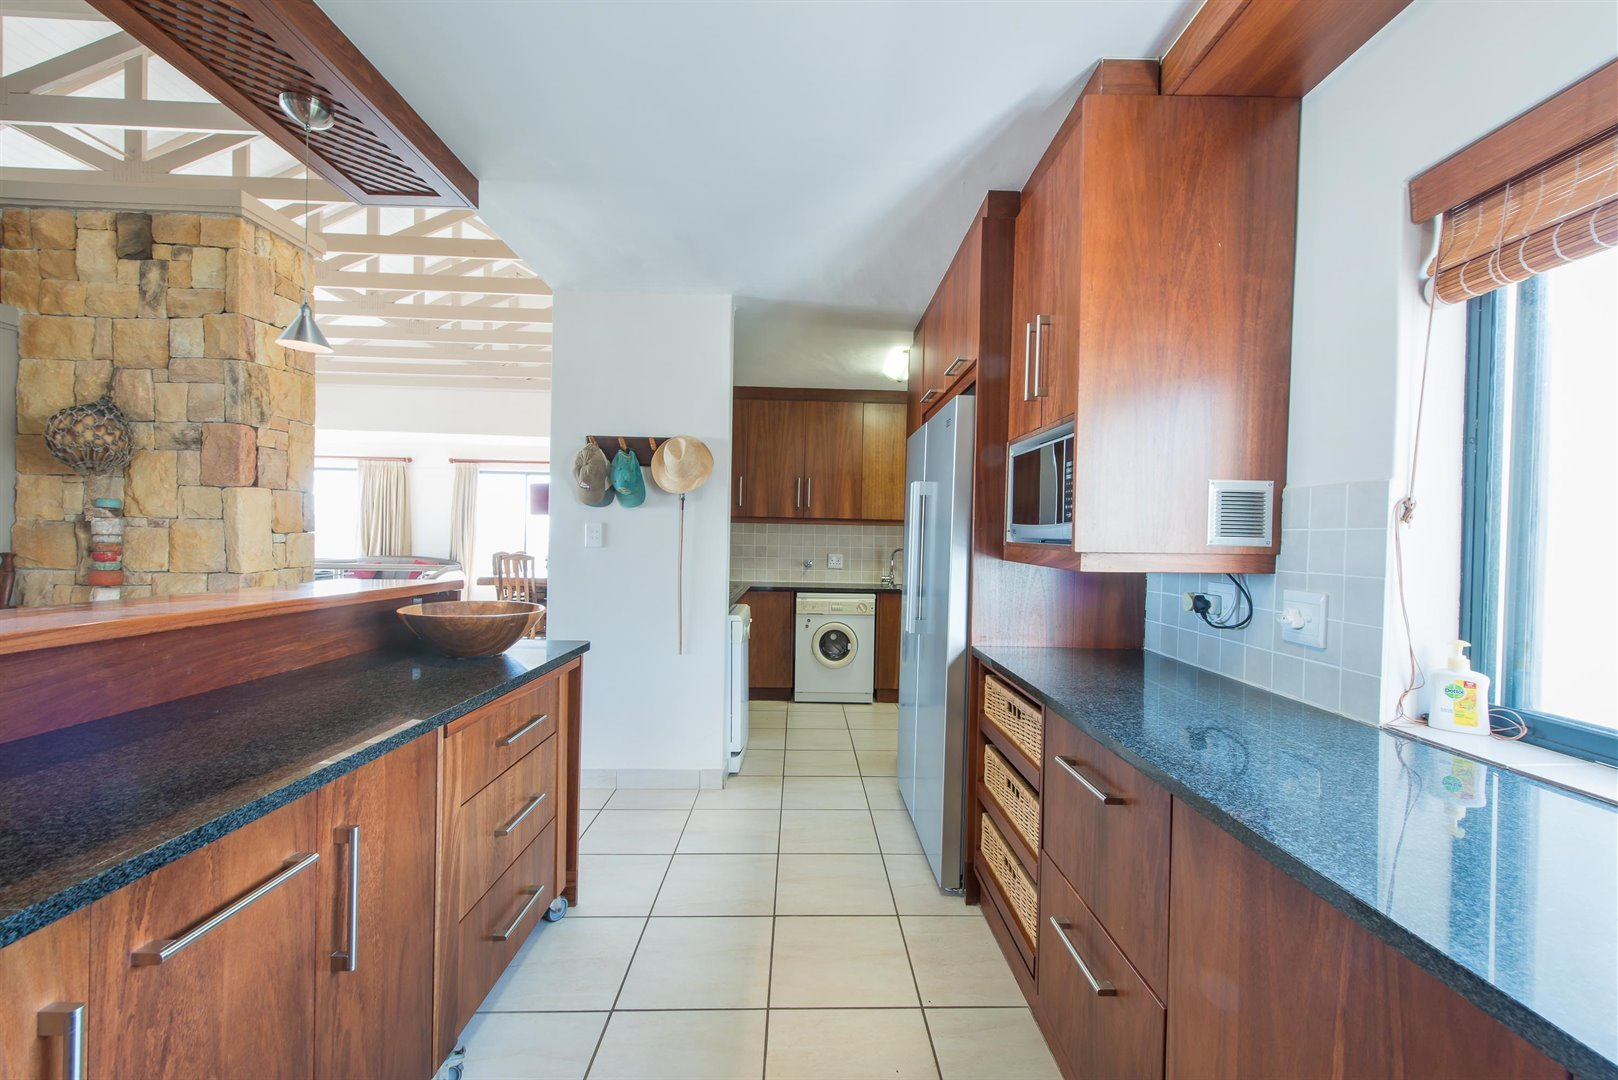 Yzerfontein property for sale. Ref No: 13373287. Picture no 41